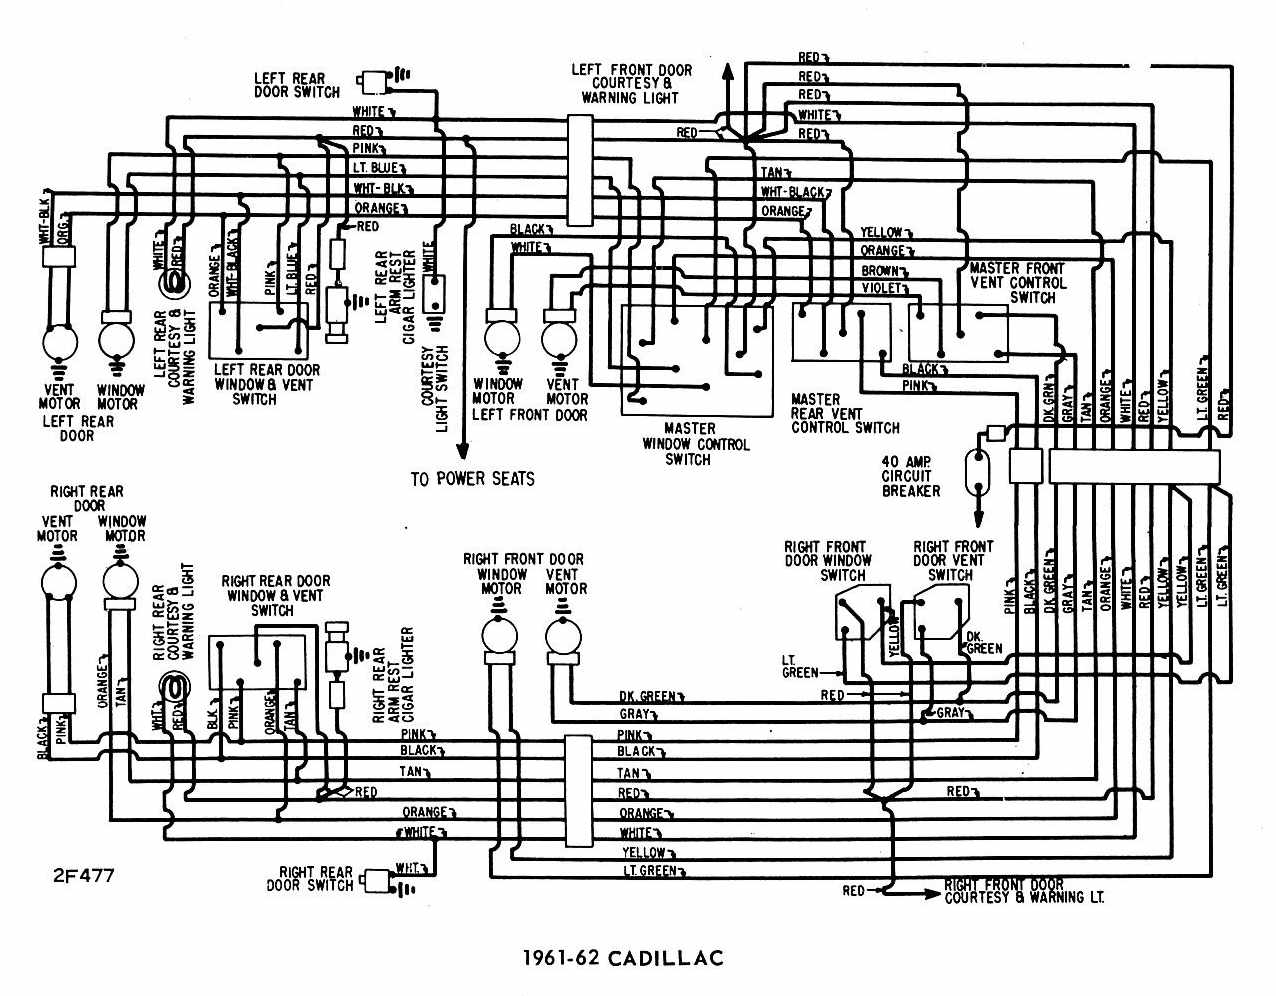 Cadillac Car Manuals Wiring Diagrams Pdf Fault Codes Oldsmobile Power Window Diagram Download